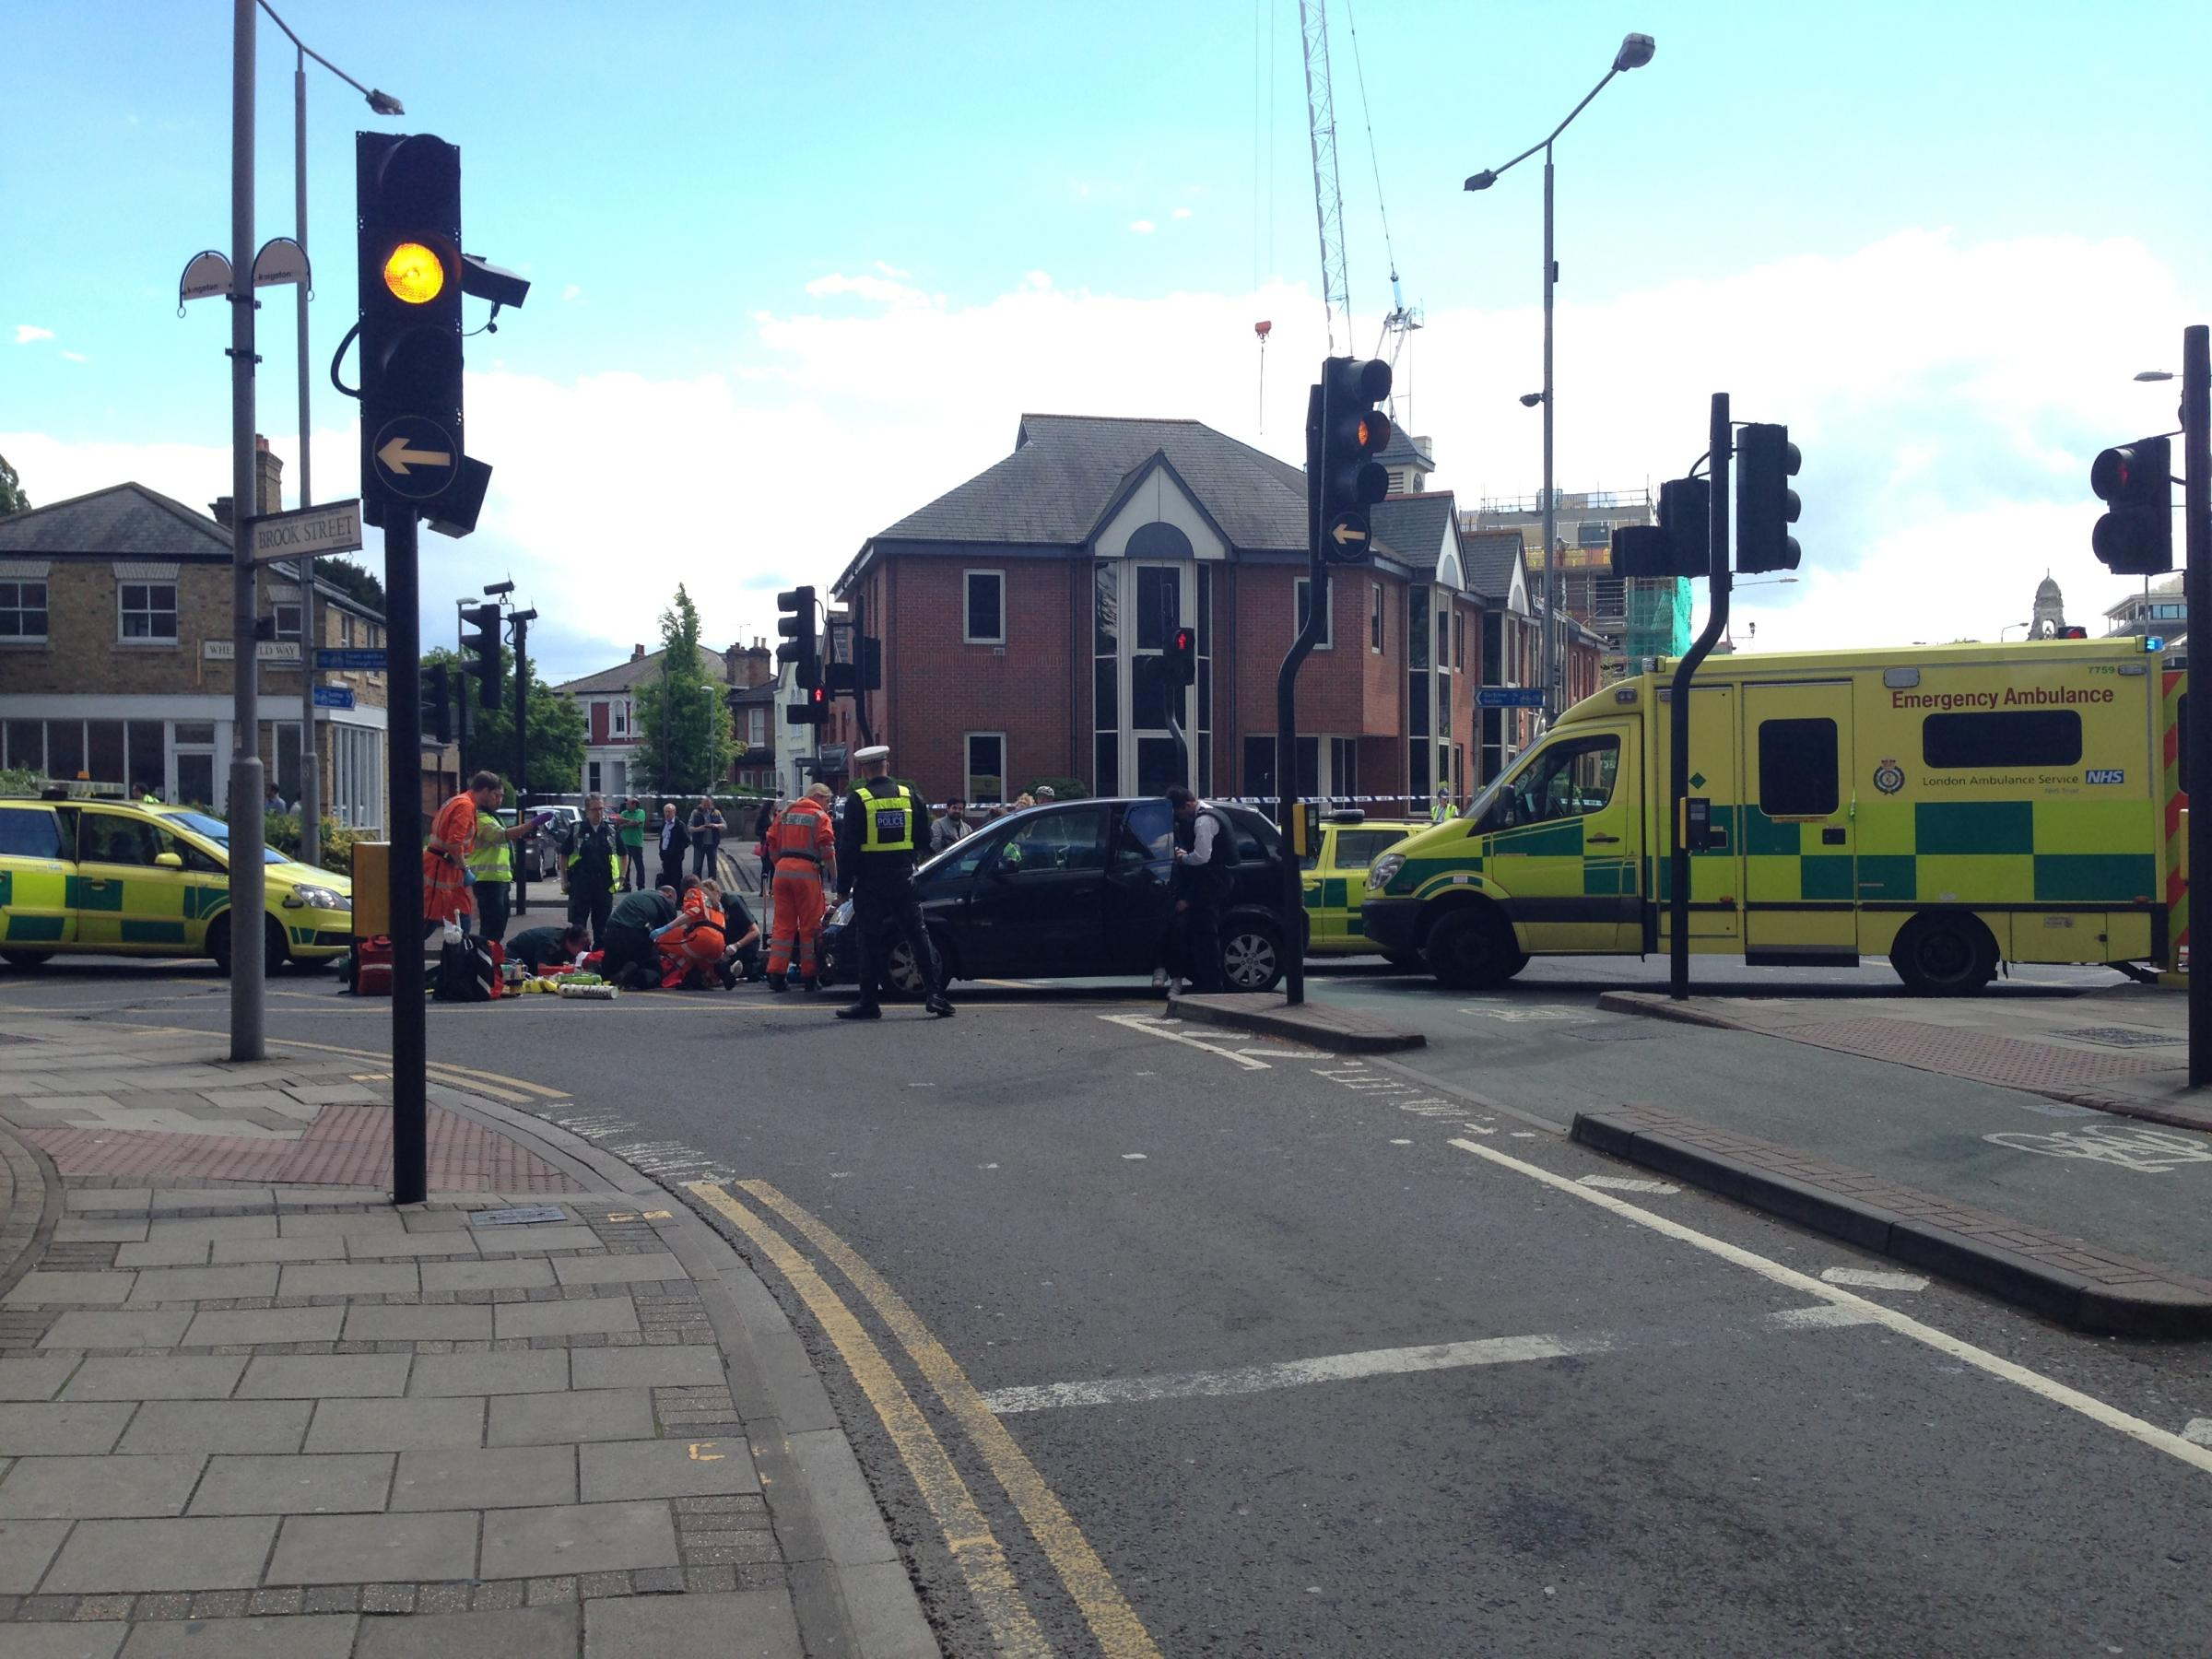 Woman 'in her 50s' hit by a car in Kingston town centre